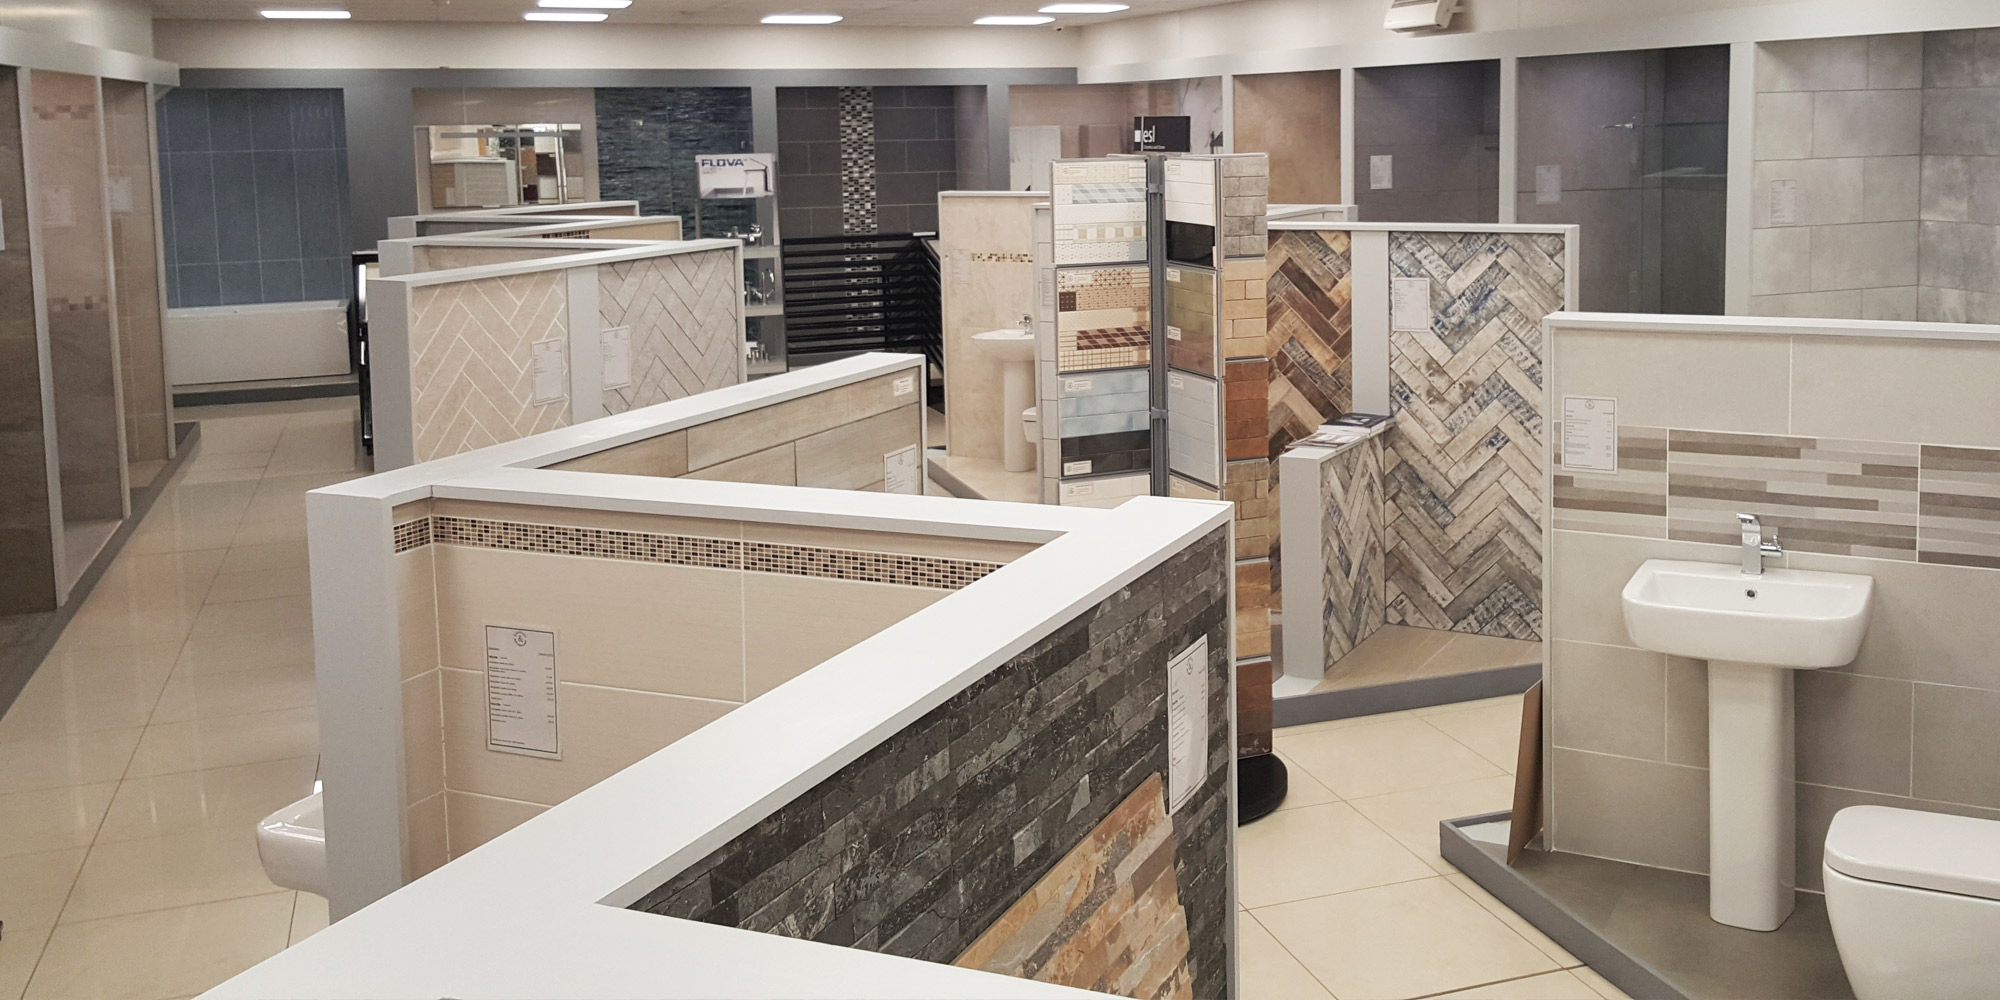 Stevanage Tile Showroom | Eurotiles and Bathrooms | Unit 13, Arlington Business Park, Whittle Way, Stevenage, SG1 2BD, United Kingdom